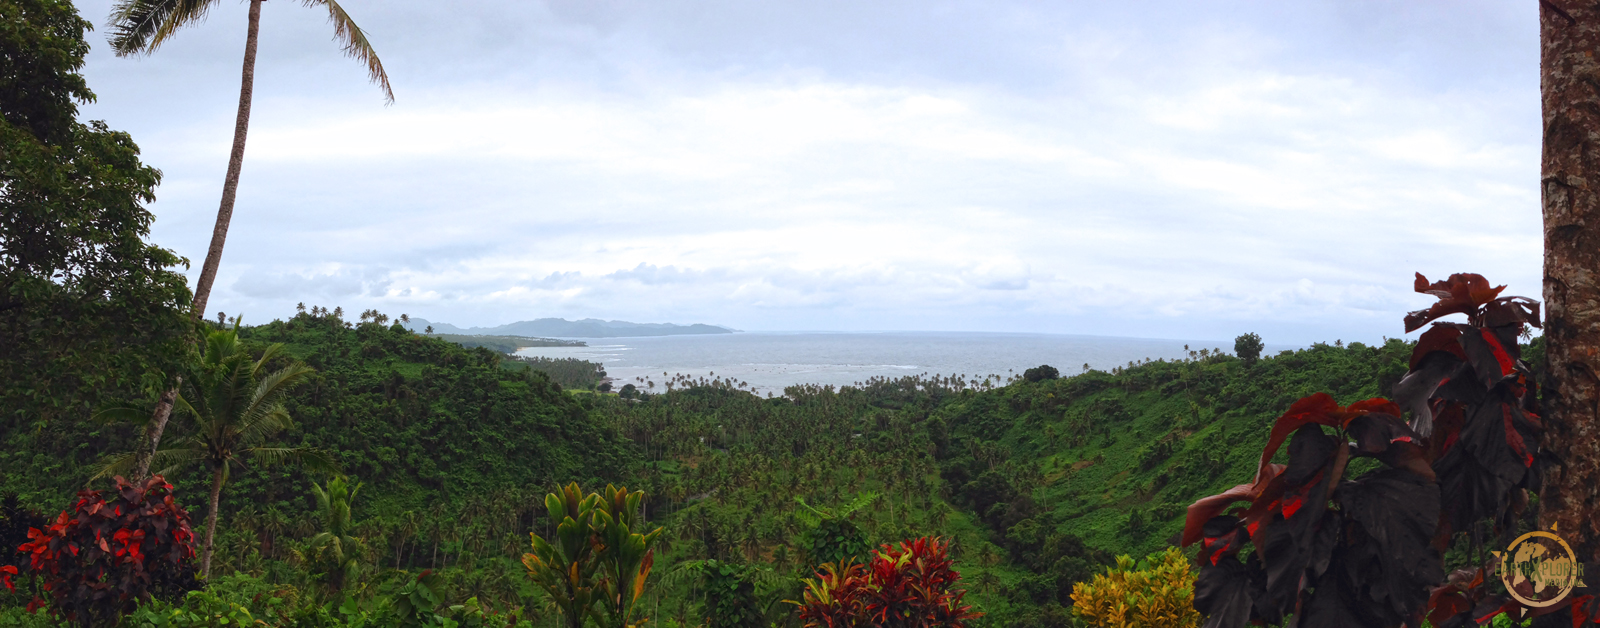 A Beautiful View of Fiji.jpg